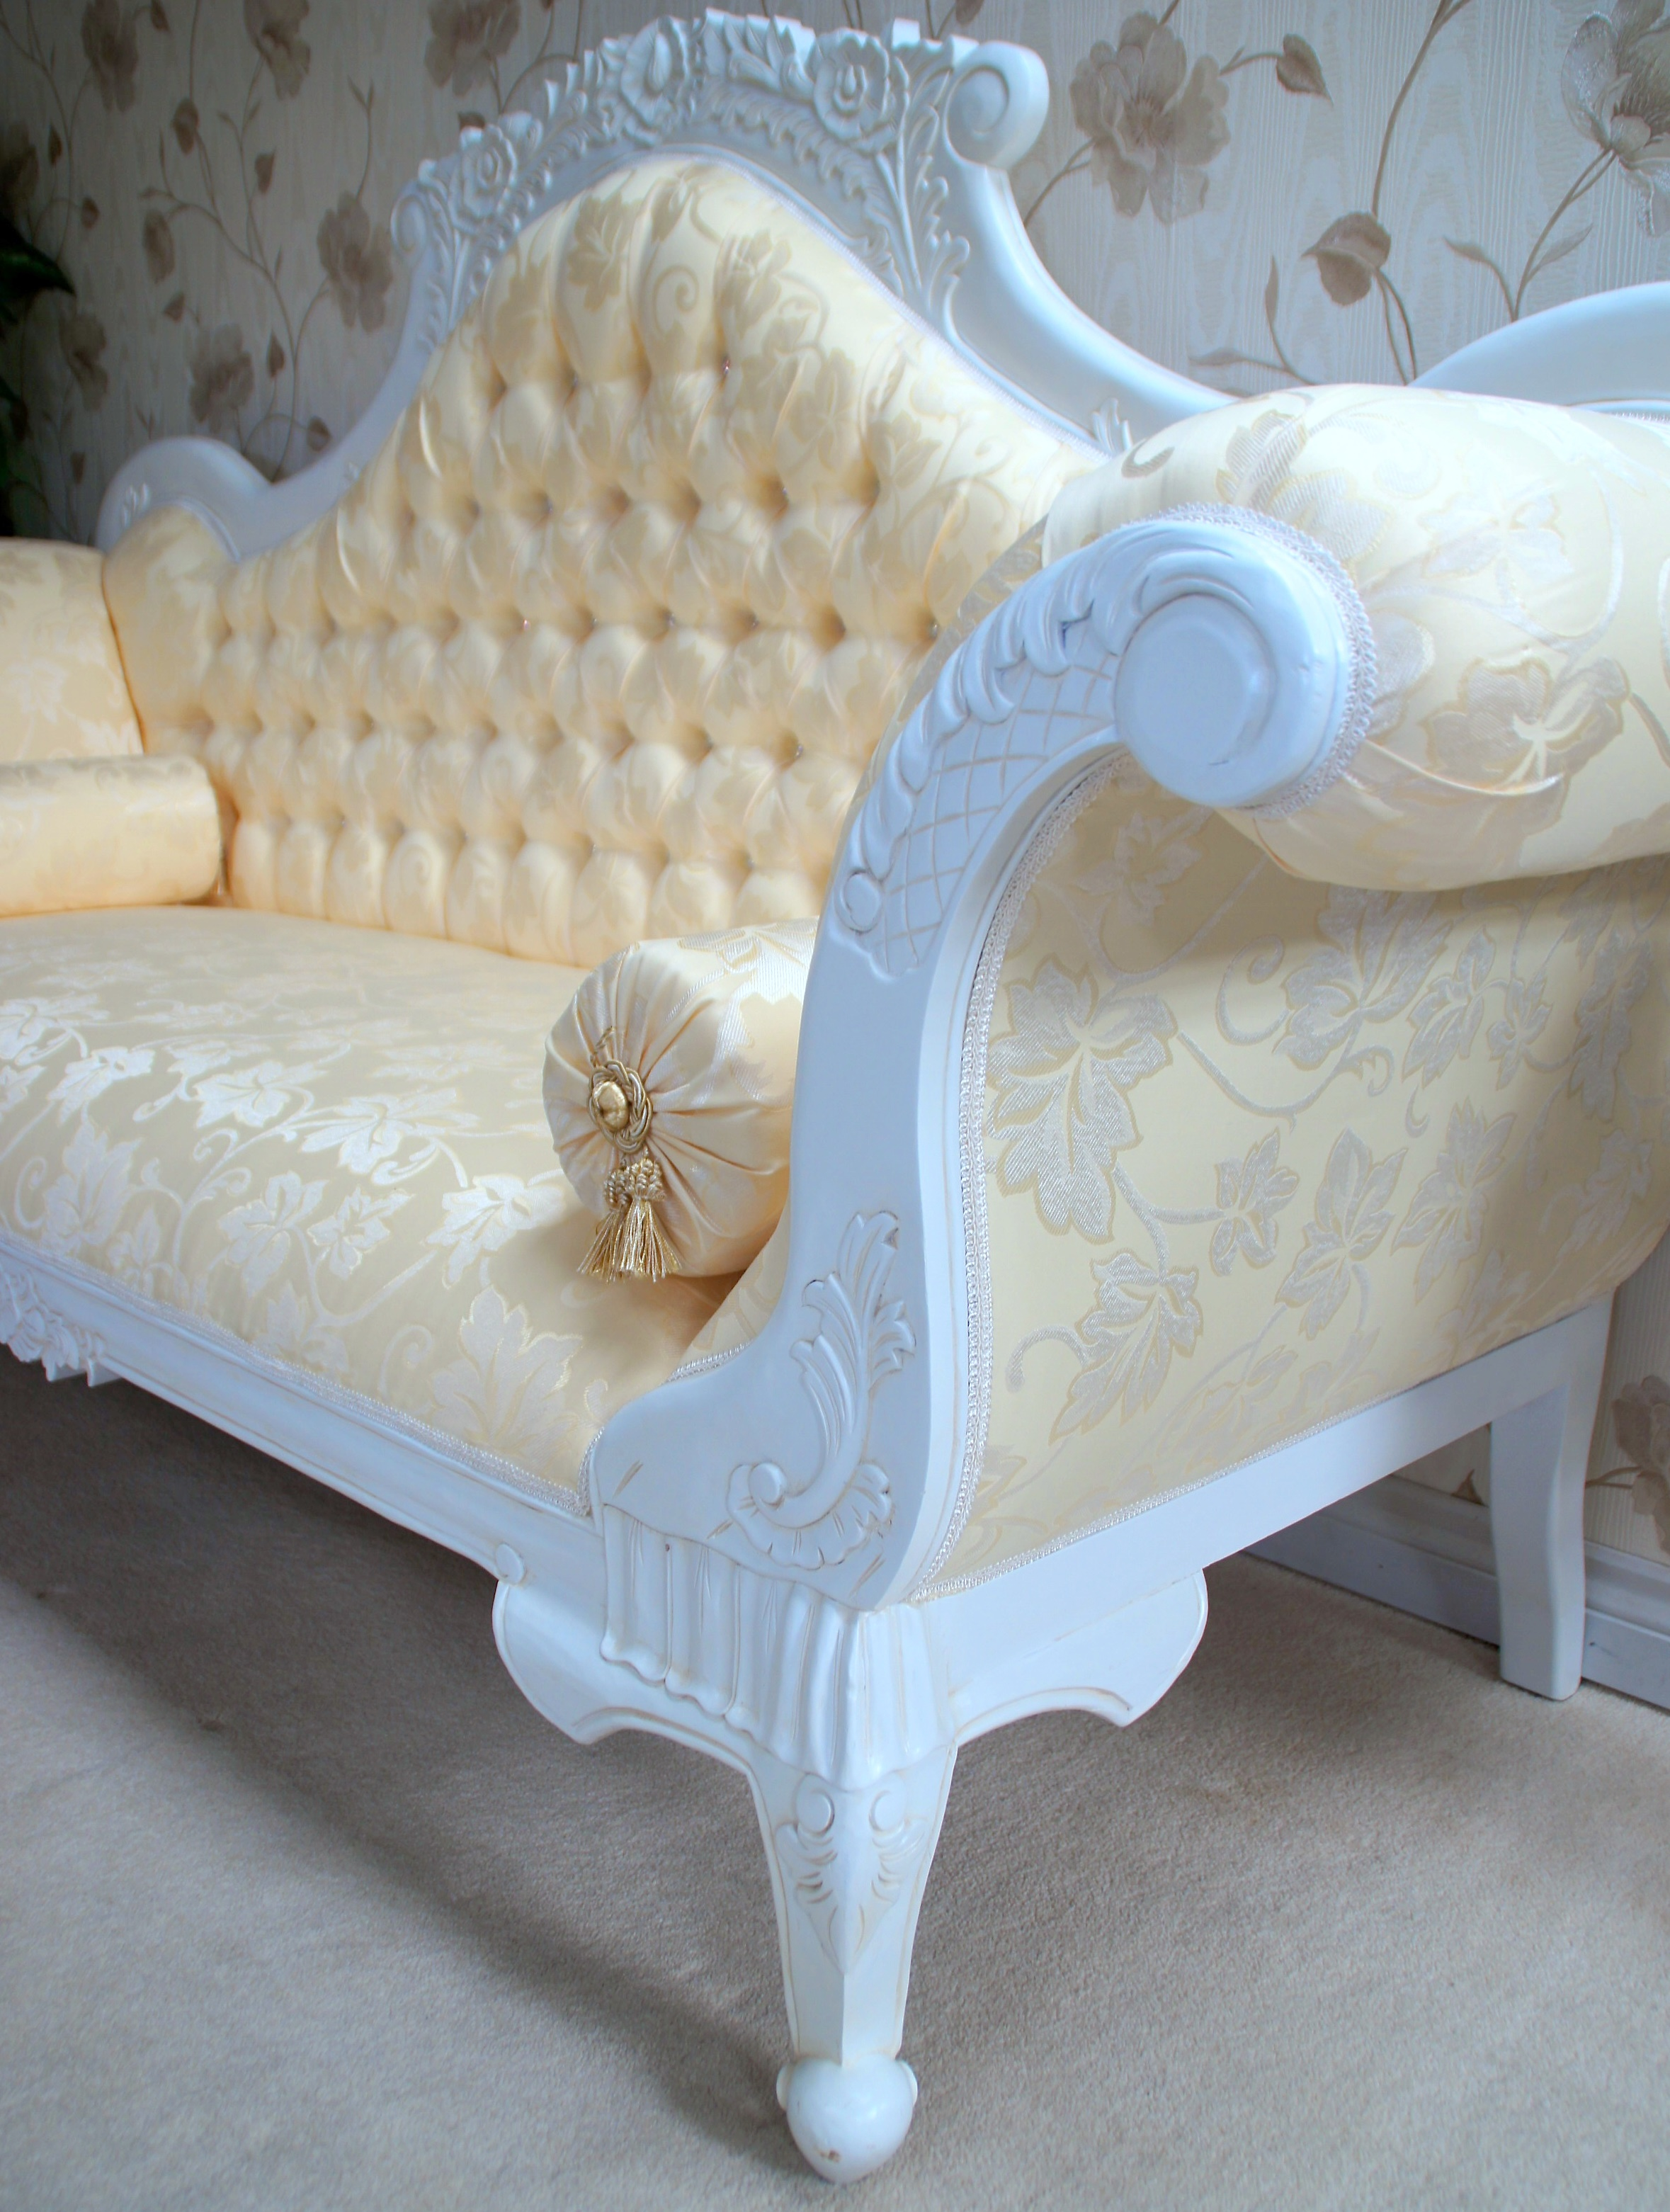 Antique White Ornate Wedding Sofa Now With Diamond Crystal